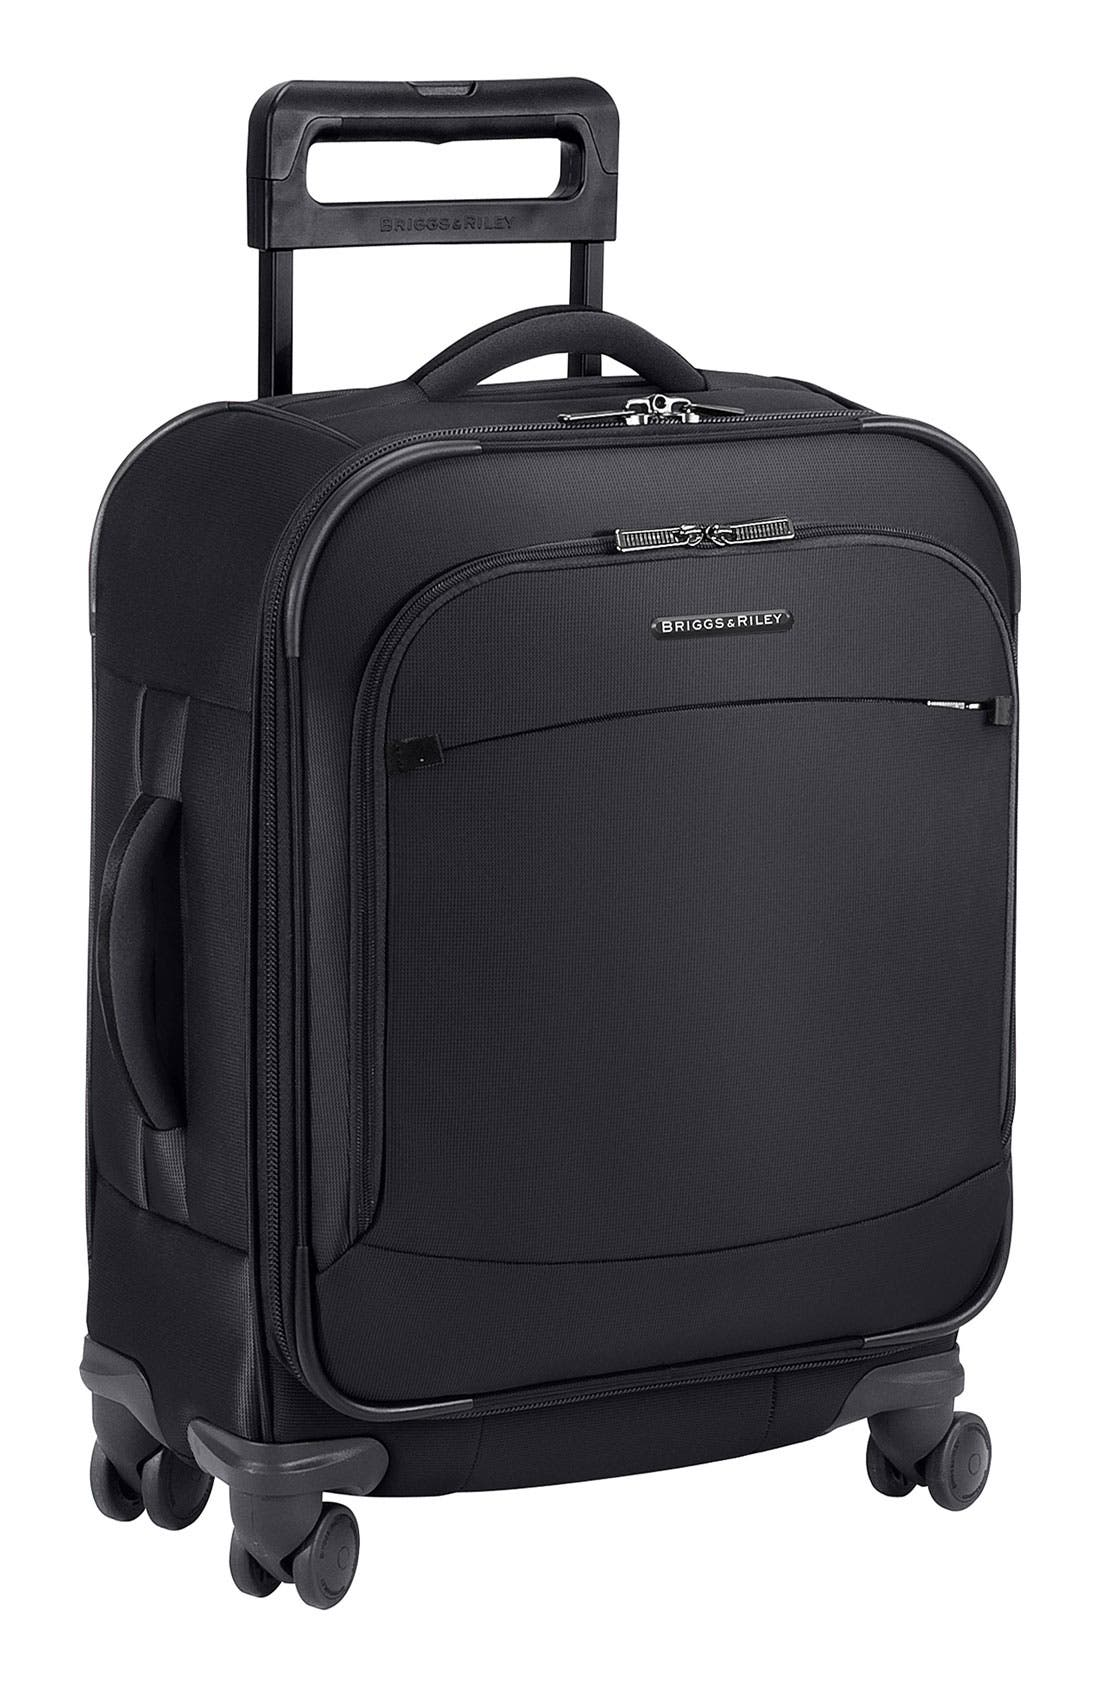 Alternate Image 1 Selected - Briggs & Riley 'International' Wide Body Spinner Carry-On (20 Inch)